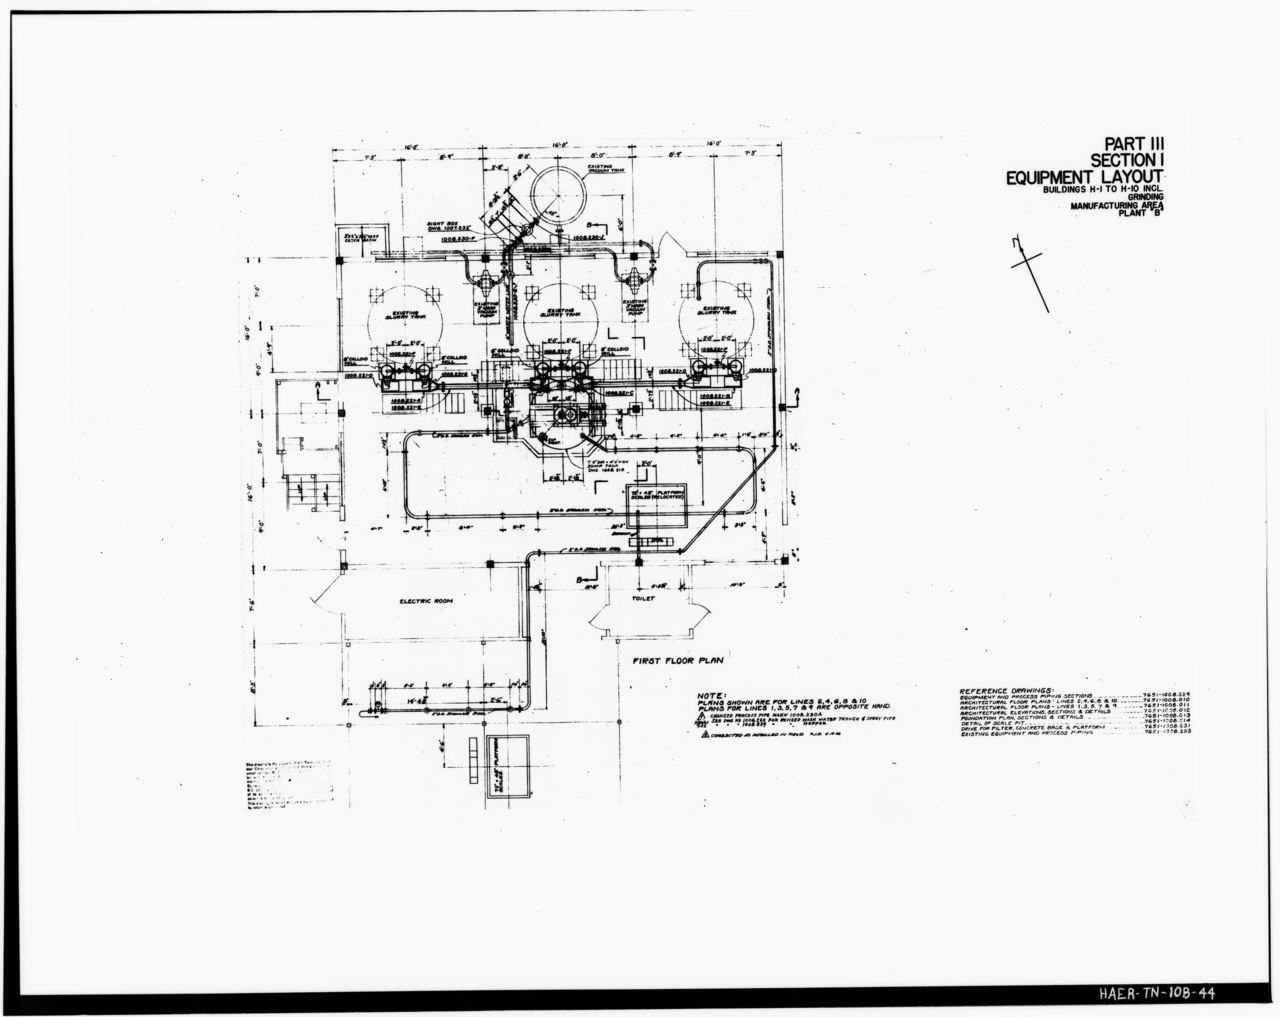 File Photograph Of A Line Drawing Plan Layout Of Part